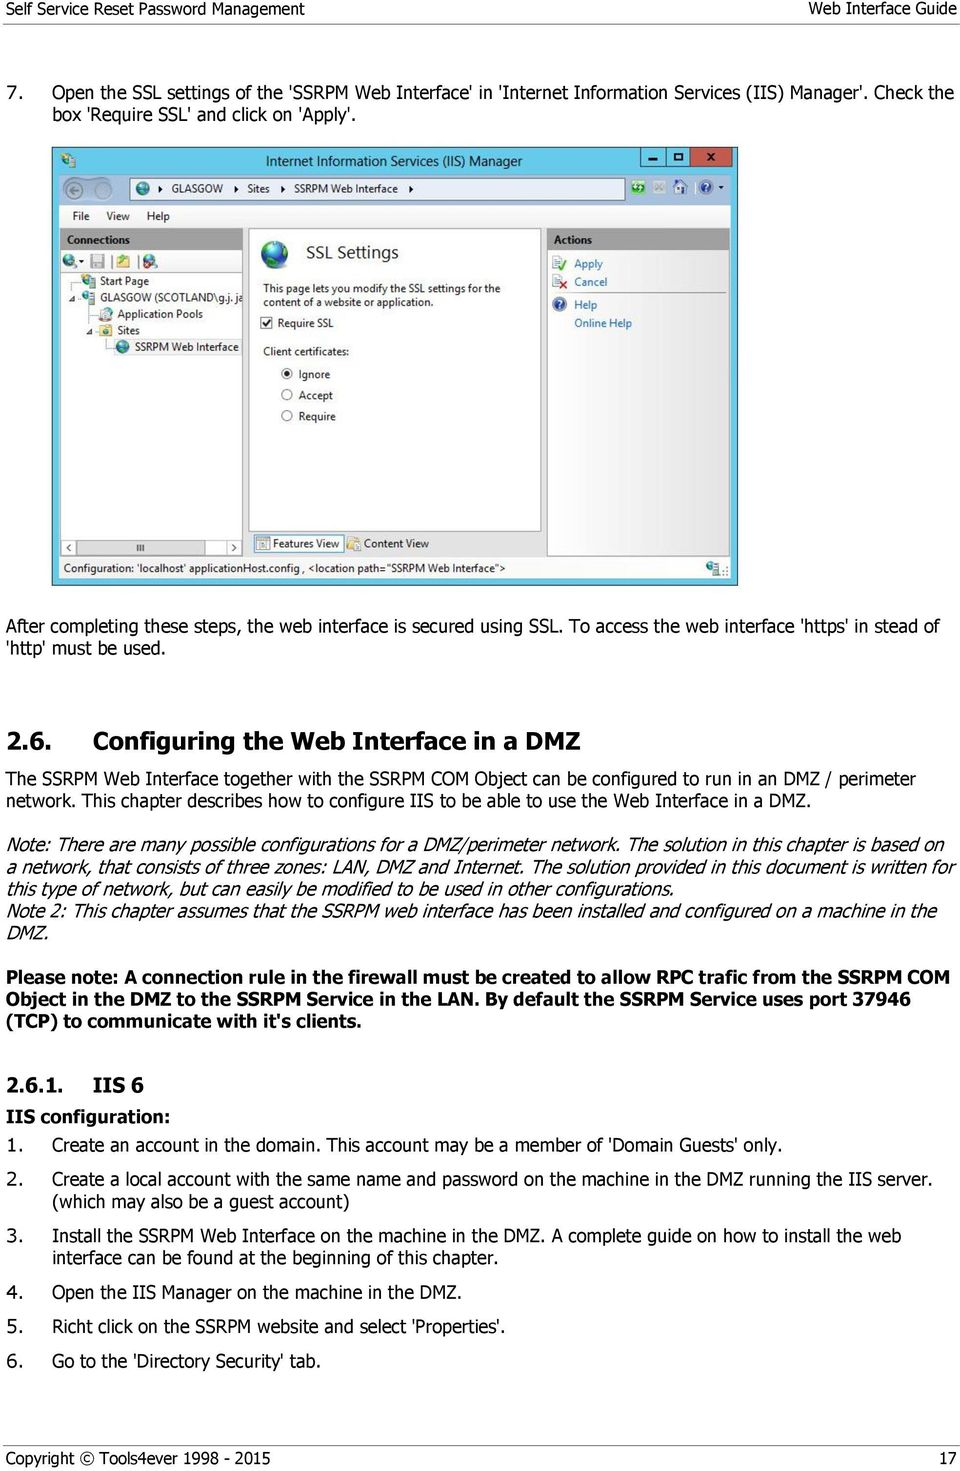 Configuring the Web Interface in a DMZ The SSRPM Web Interface together with the SSRPM COM Object can be configured to run in an DMZ / perimeter network.